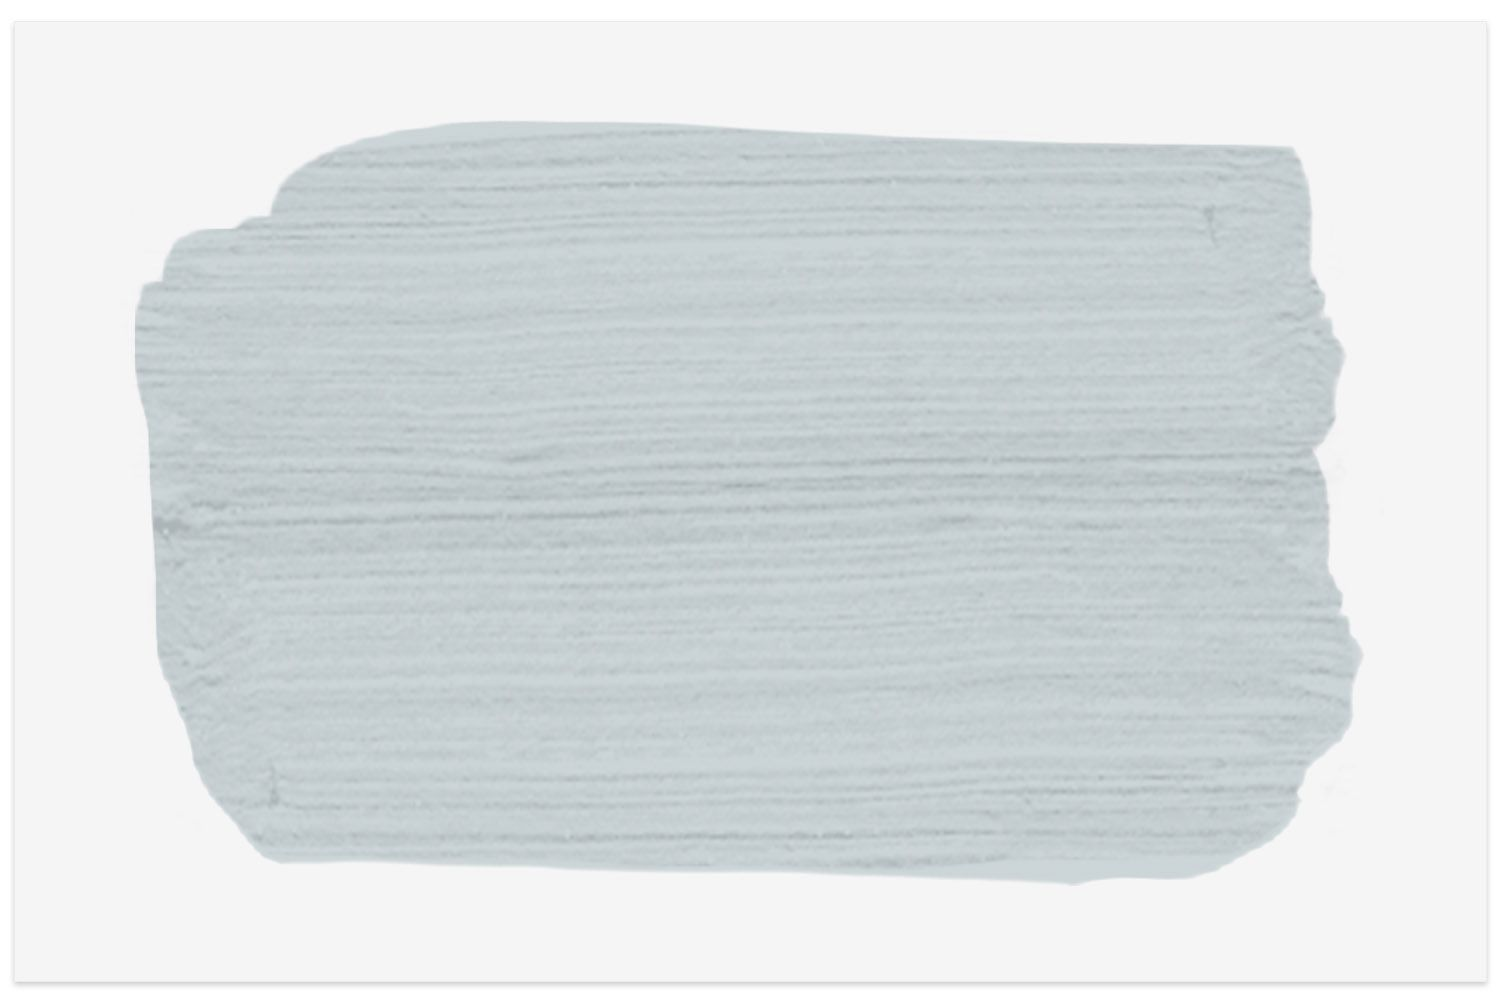 Ash Blue N470-1 paint swatch from Behr